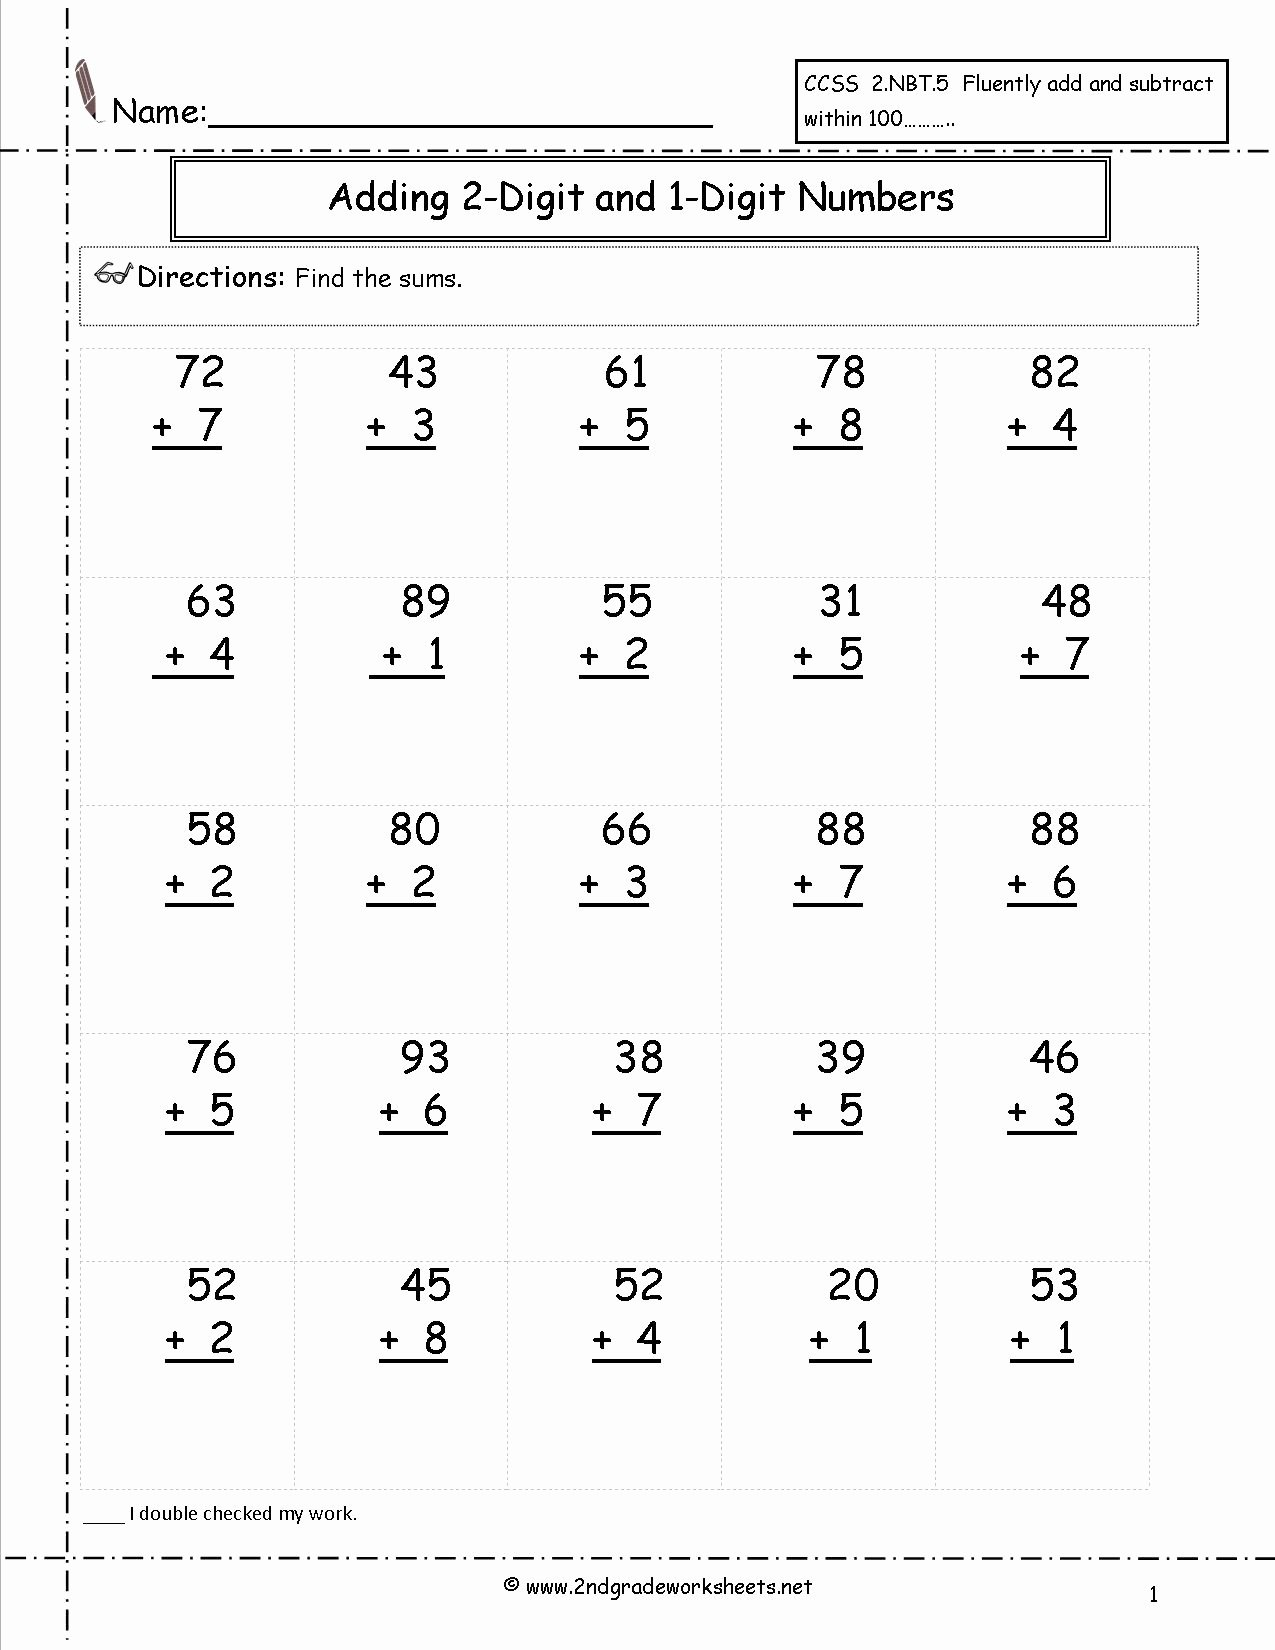 Answer Sheet Template 1-100 Inspirational 3 Digit Addition with Regrouping Worksheets Free the Best